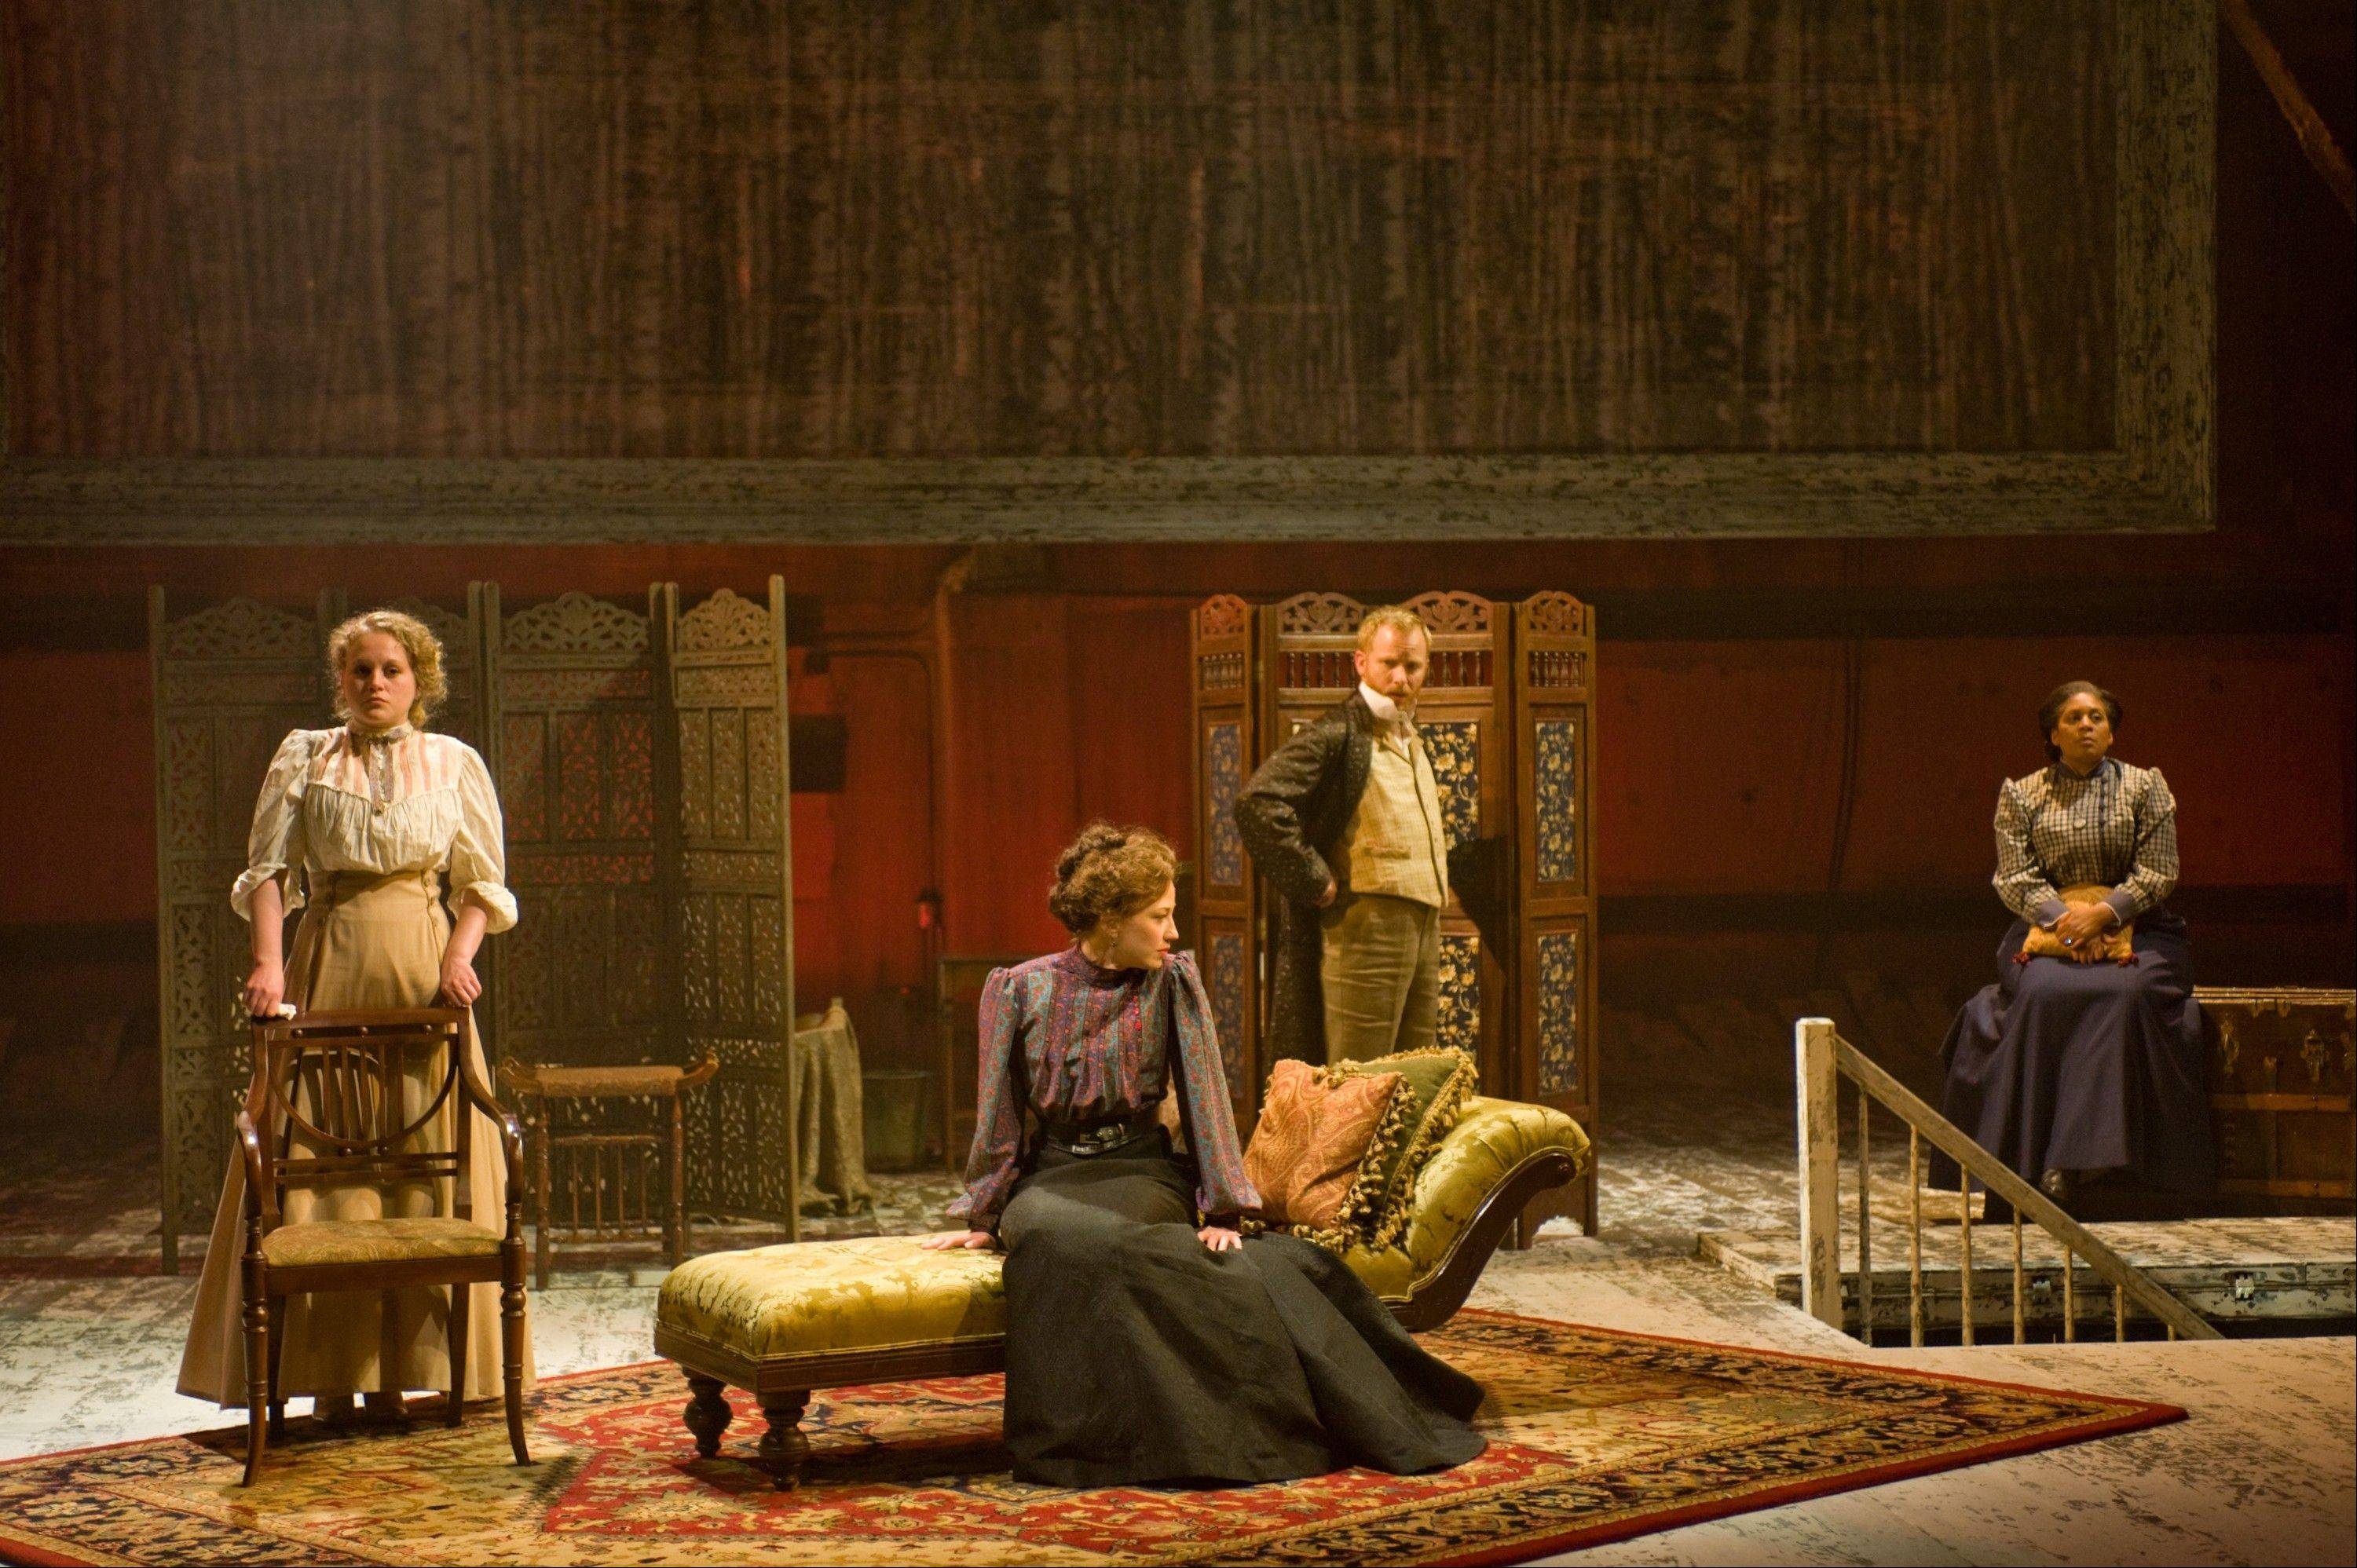 "Andrey (Dan Walker, second from right) confronts his despairing sisters Irina (Caroline Neff, left), Masha (Carrie Coon, second from left) and Olga (Ora Jones) in Steppenwolf Theatre's production of Anton Chekhov's ""Three Sisters,"" directed by Anna D. Shapiro from Tracy Letts' adaptation."